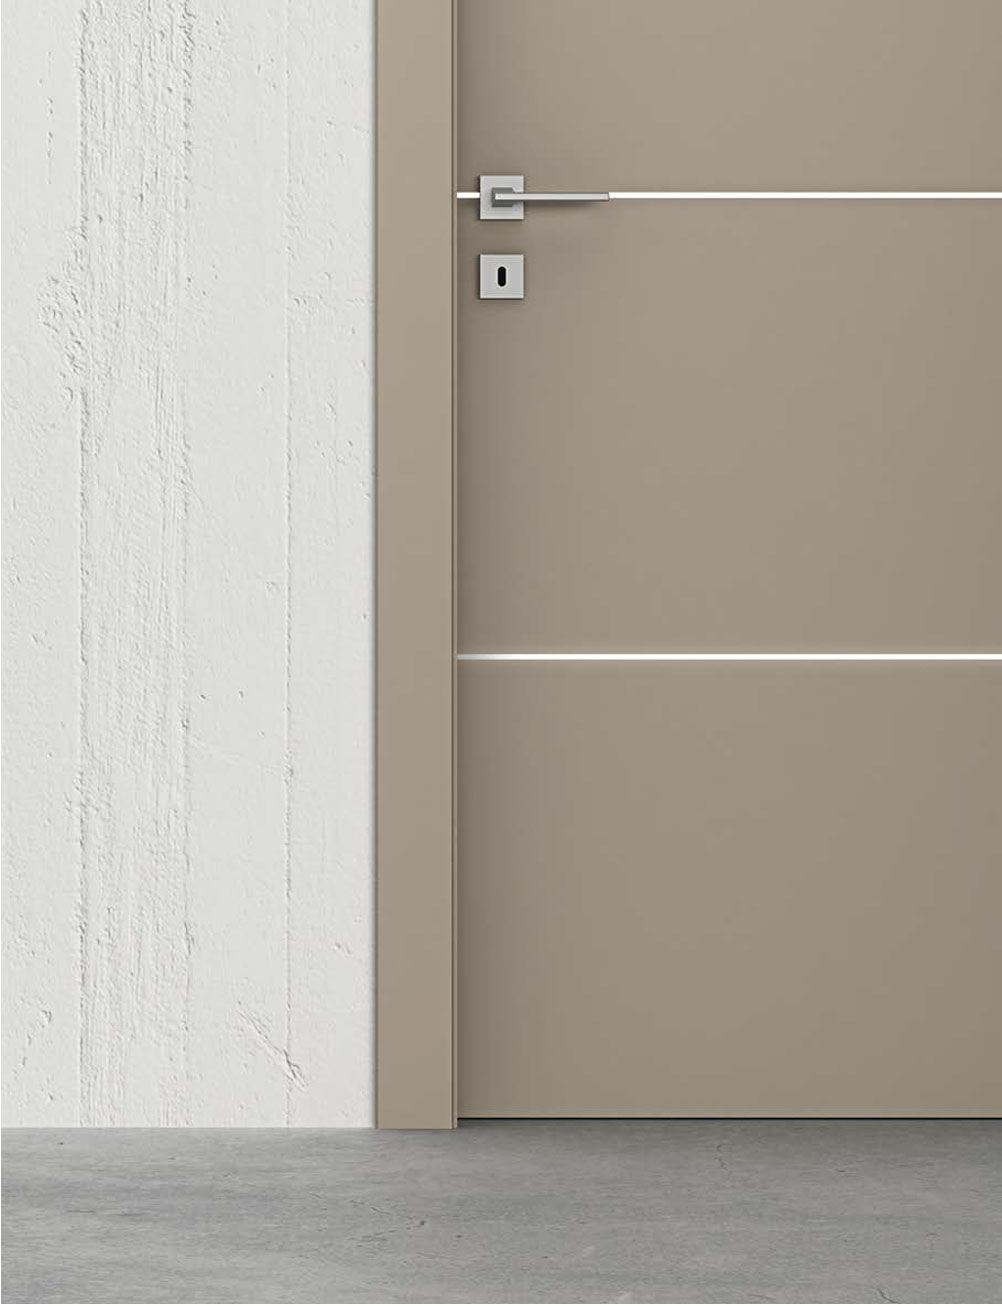 Baan collection adea porte your italian door - Serratura magnetica porte interne ...